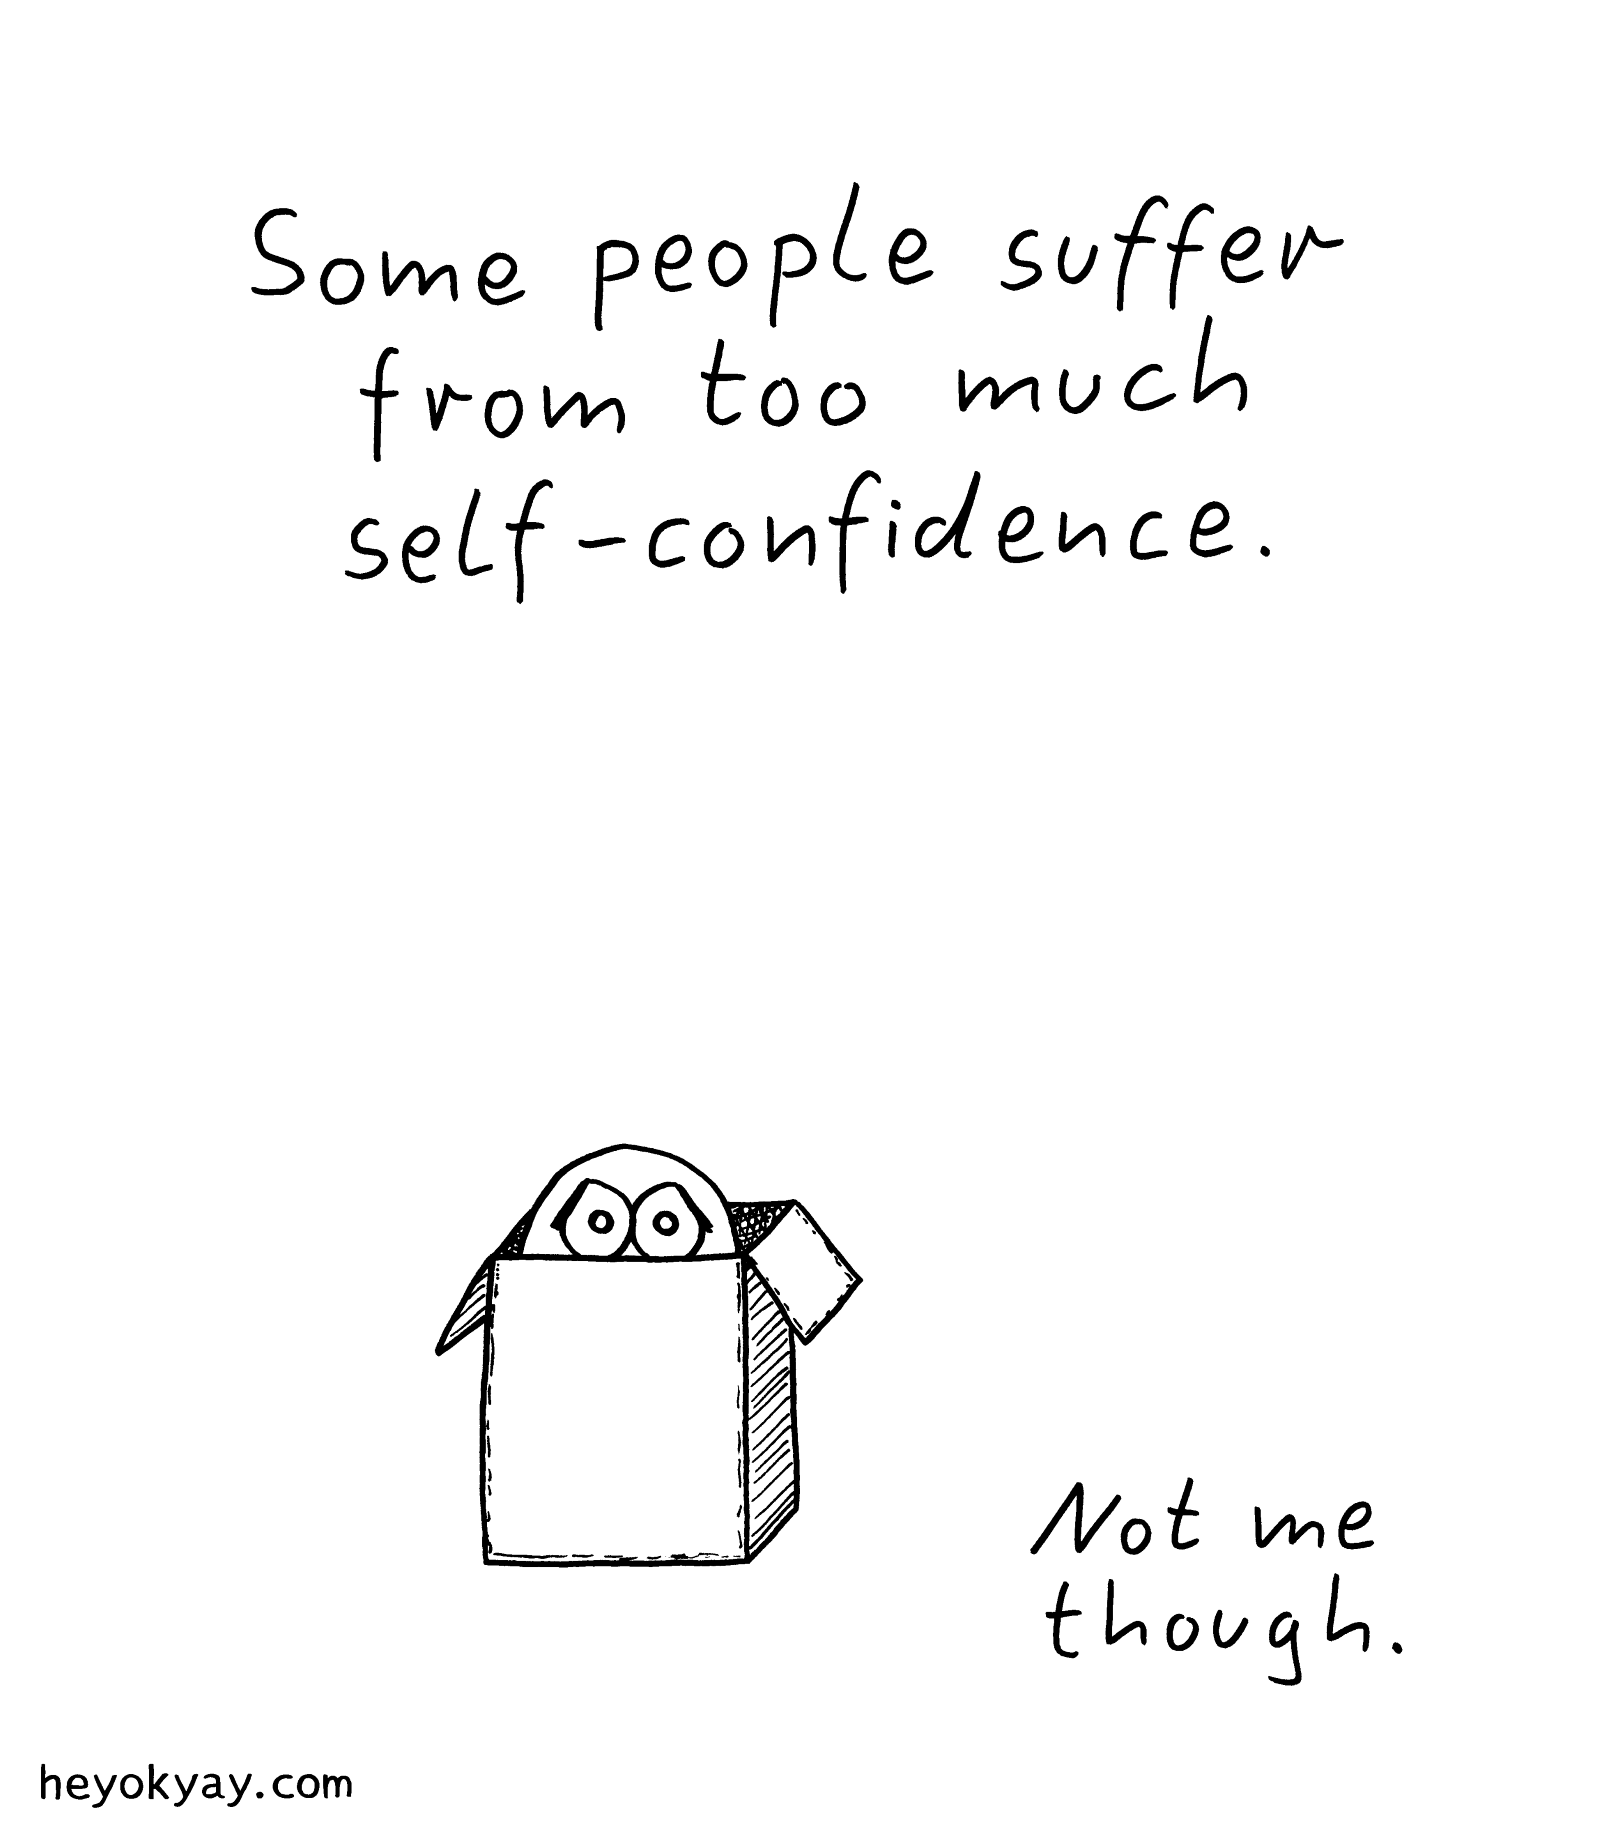 Self-confidence | Hey ok yay?